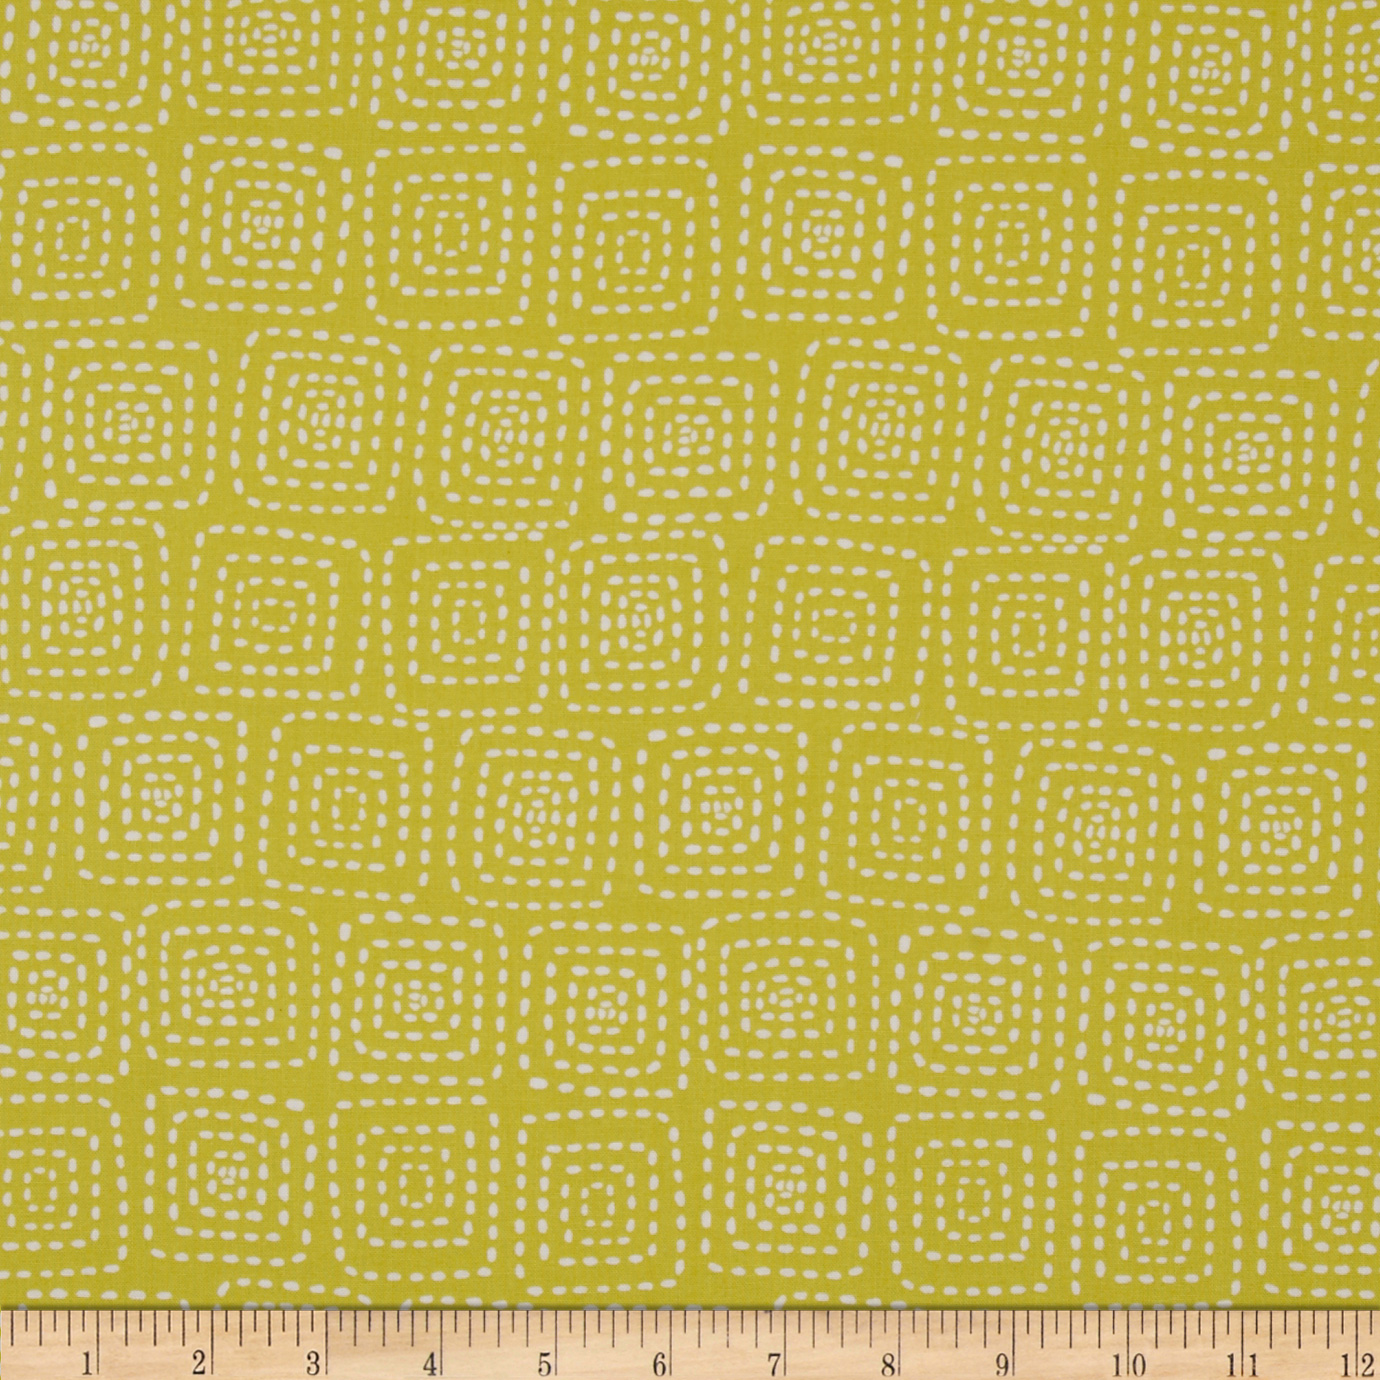 Michael Miller Stitch Square Citron